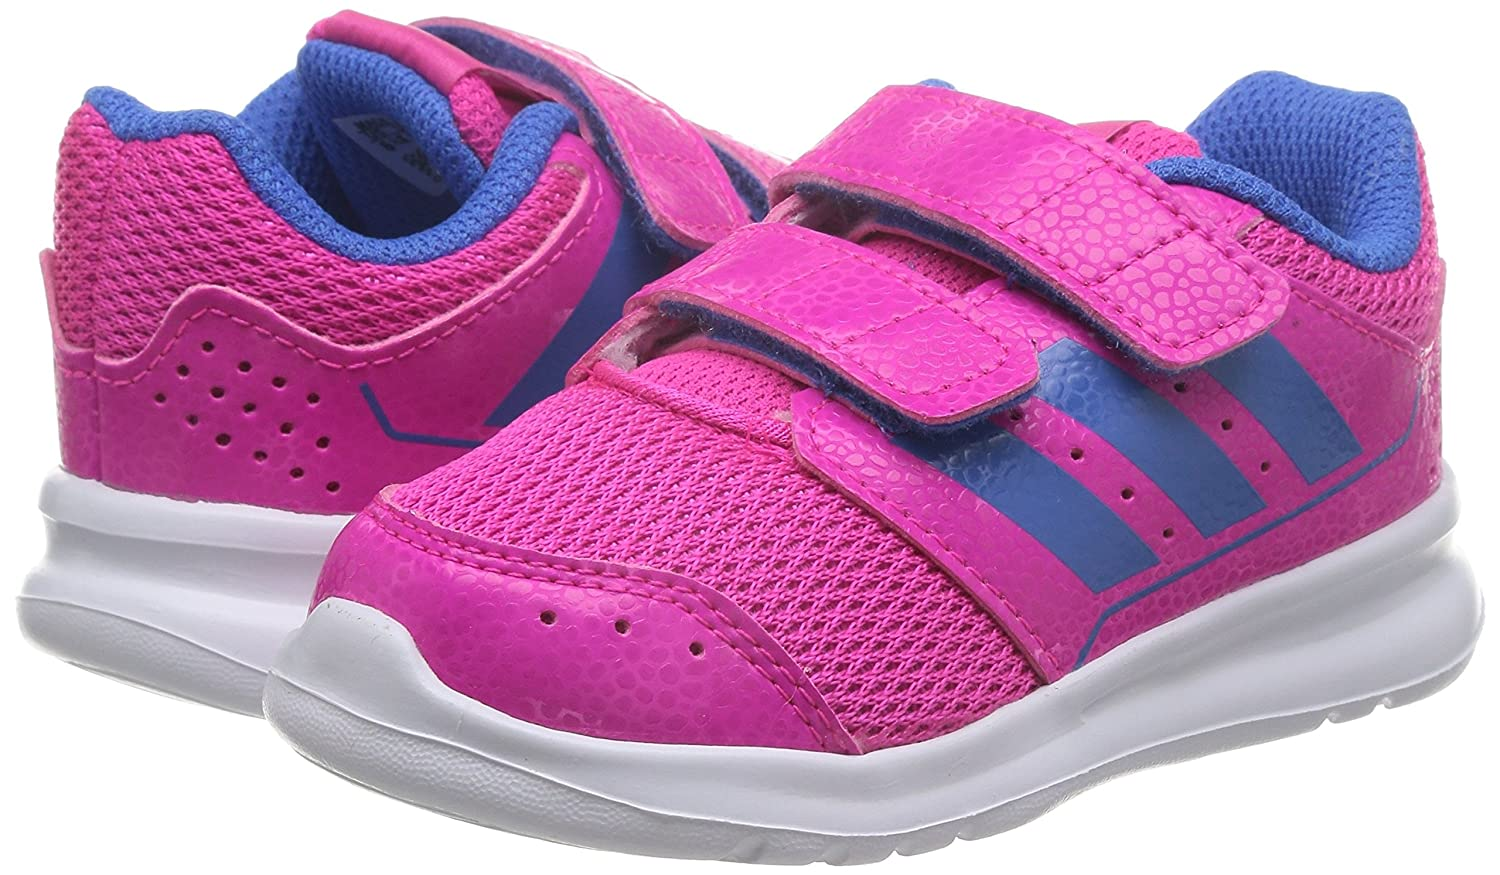 buy popular 38603 d55d3 adidas Unisex Kids  Lk Sport 2 Cf I Multisport Outdoor Shoes, (Shock Pink  S16 Ray Blue F16 Ftwr White), 6 Child UK 23 EU  Amazon.co.uk  Shoes   Bags